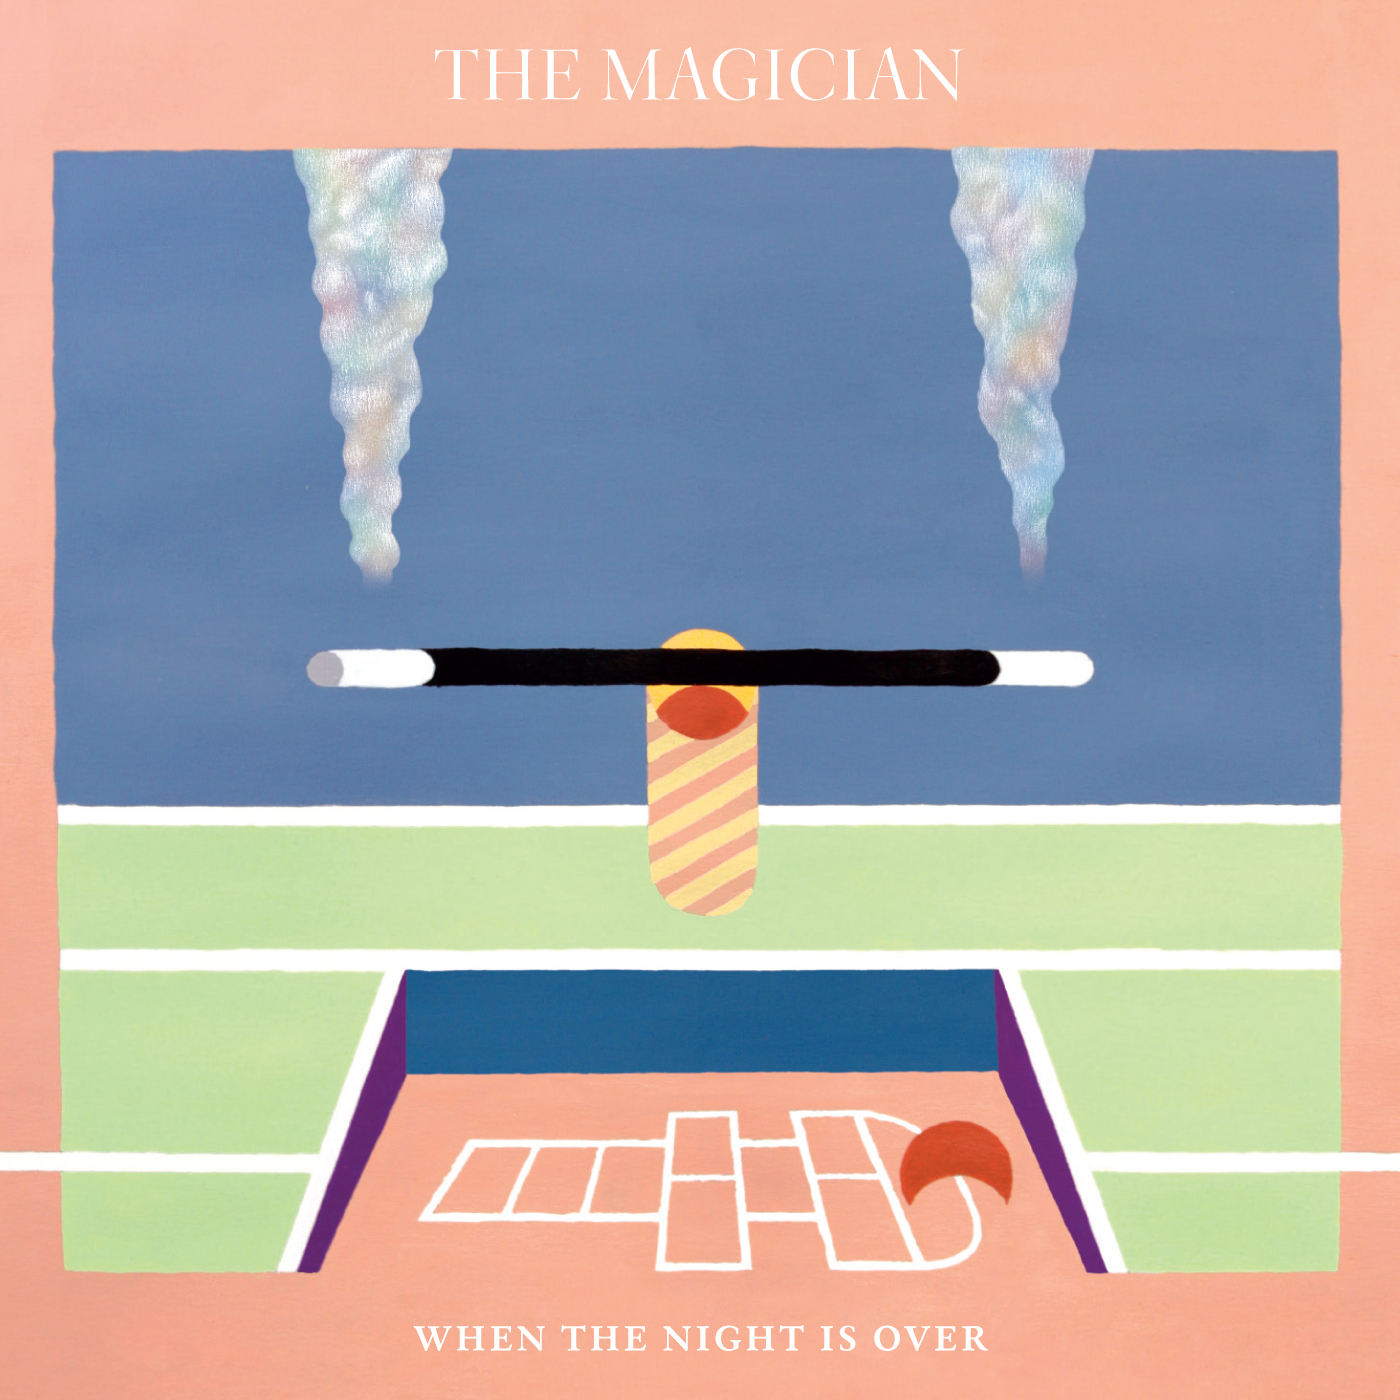 The-Magician-When-The-Night-Is-Over-feat.-Newtimers